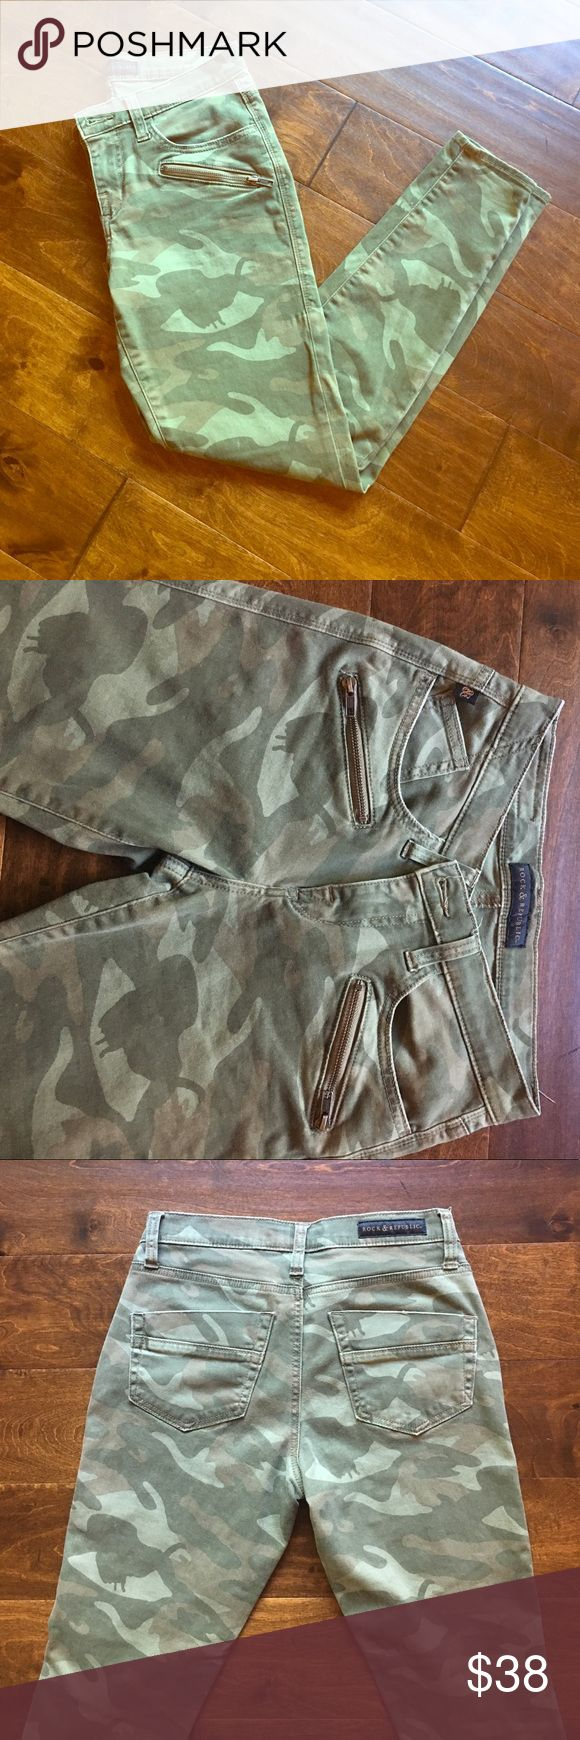 "Rock and Republic Cropped SkinnyCamo Jeans 4/6 Excellent condition Kashmiere style camo jean. Super cute zipper slash pockets under regular pockets. 27.5"" inseam. Fit is very skinny for a 6, looser for a size 4. Rock & Republic Jeans Skinny"